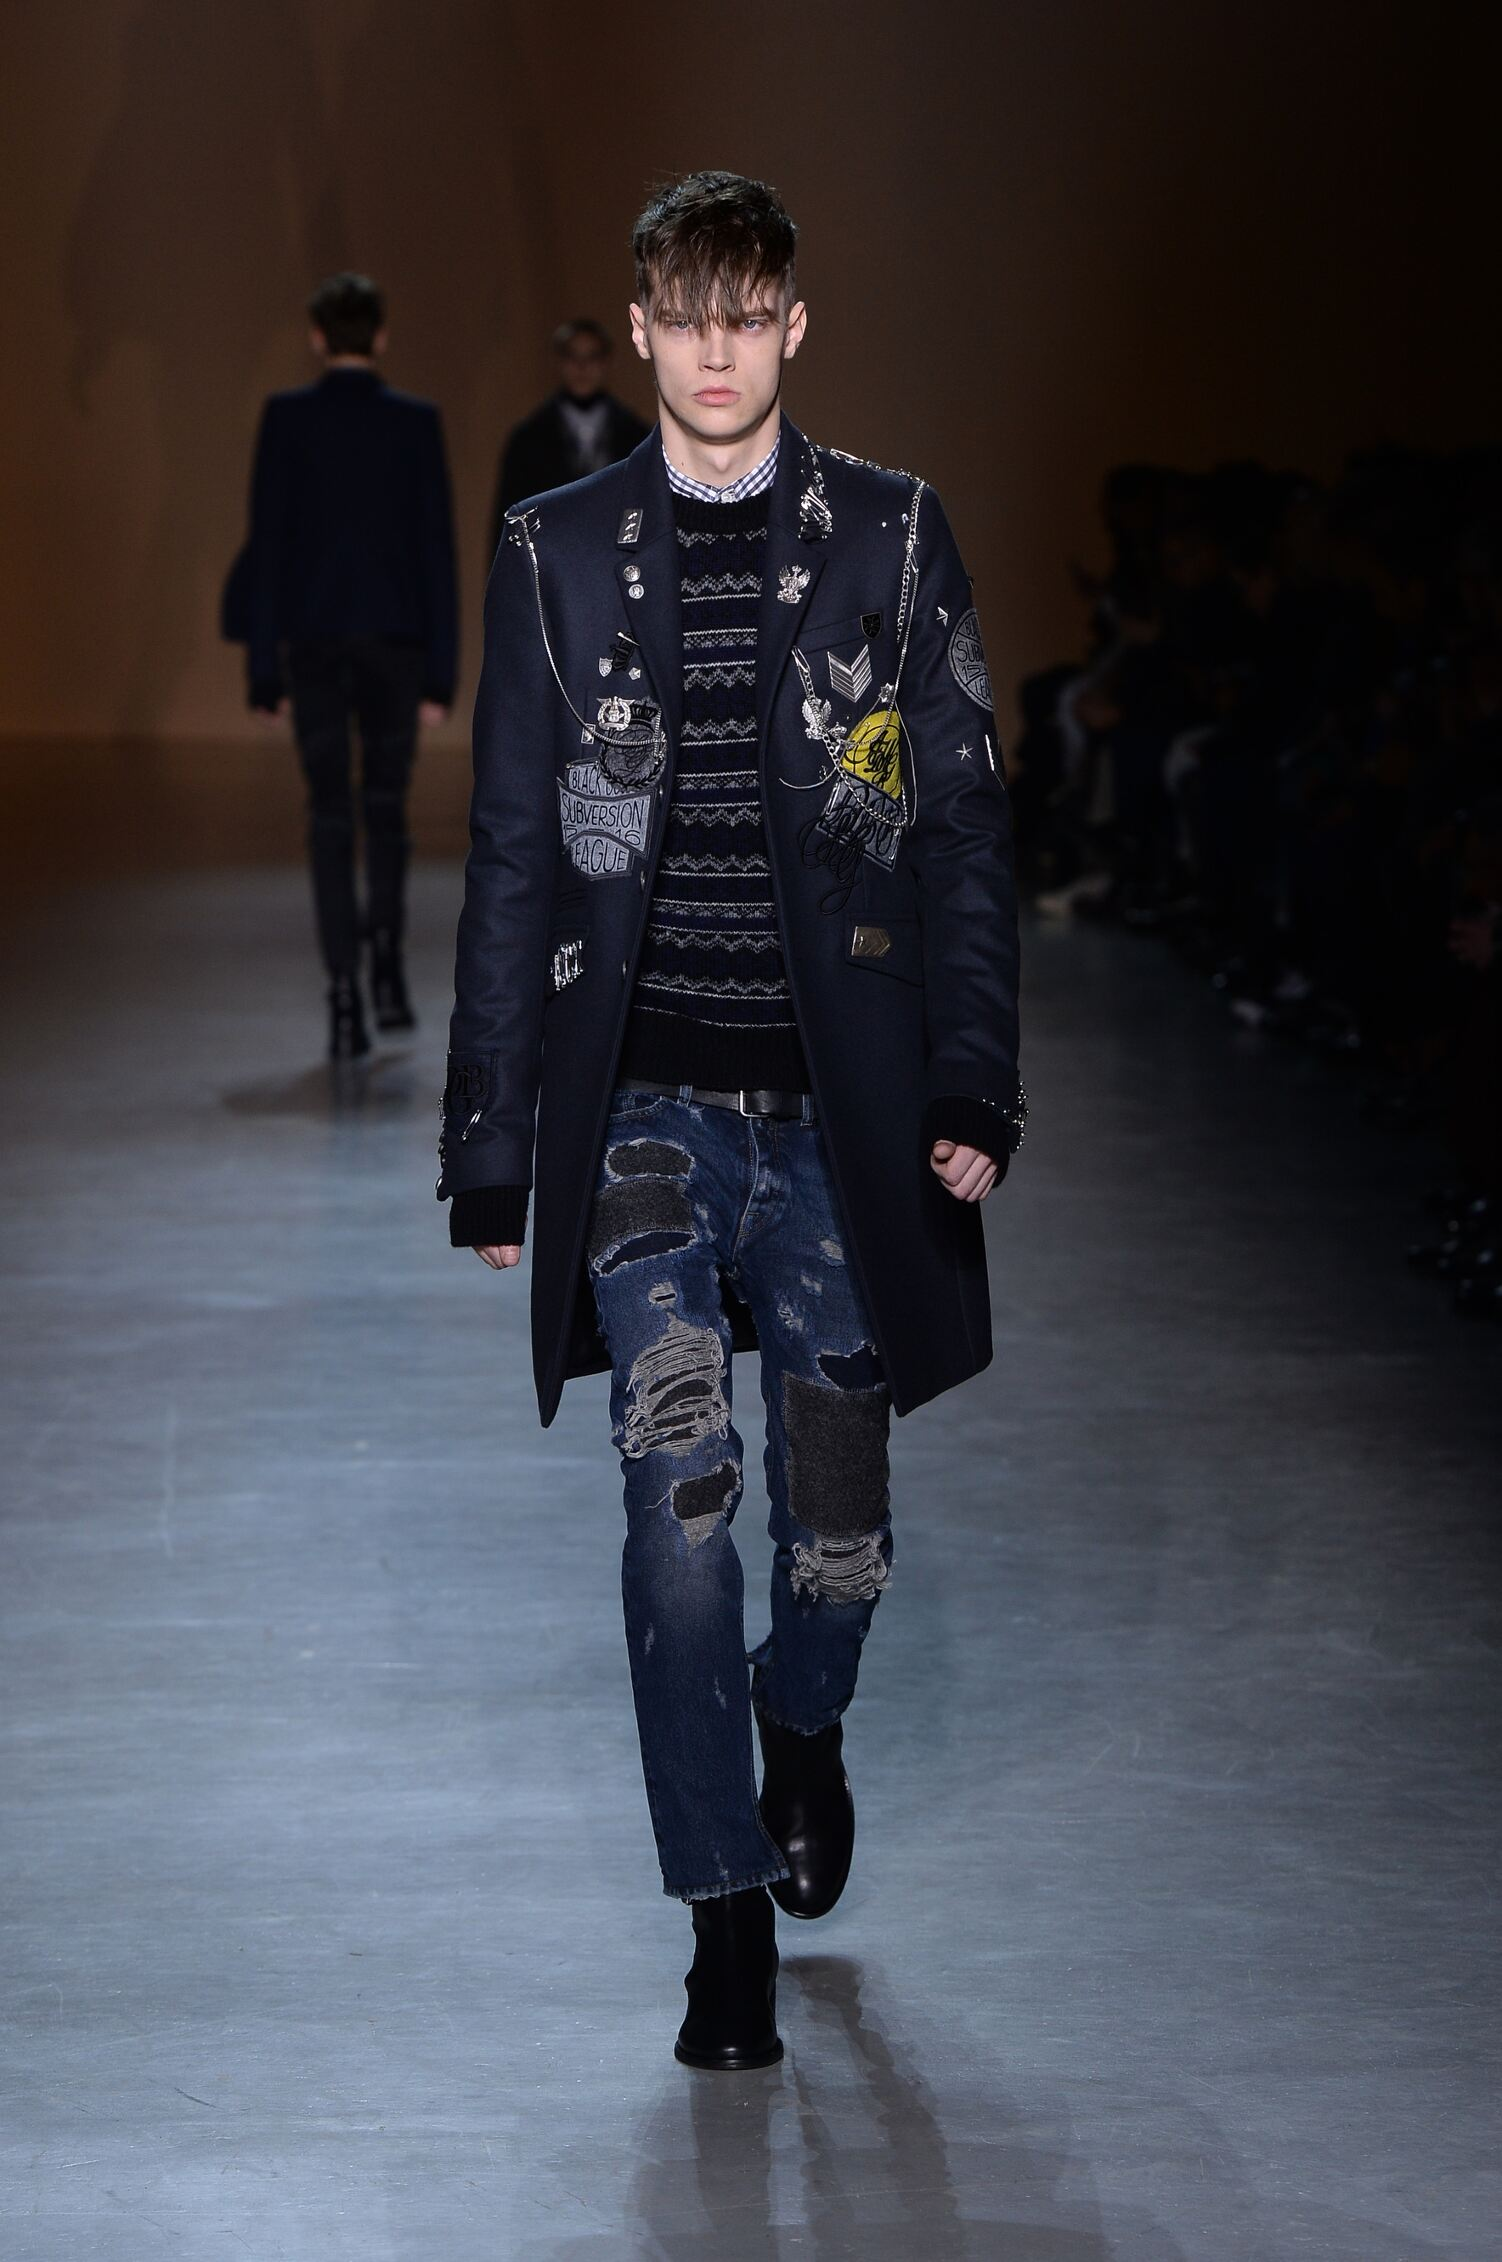 DIESEL BLACK GOLD FALL WINTER 2015-16 MEN'S COLLECTION ...